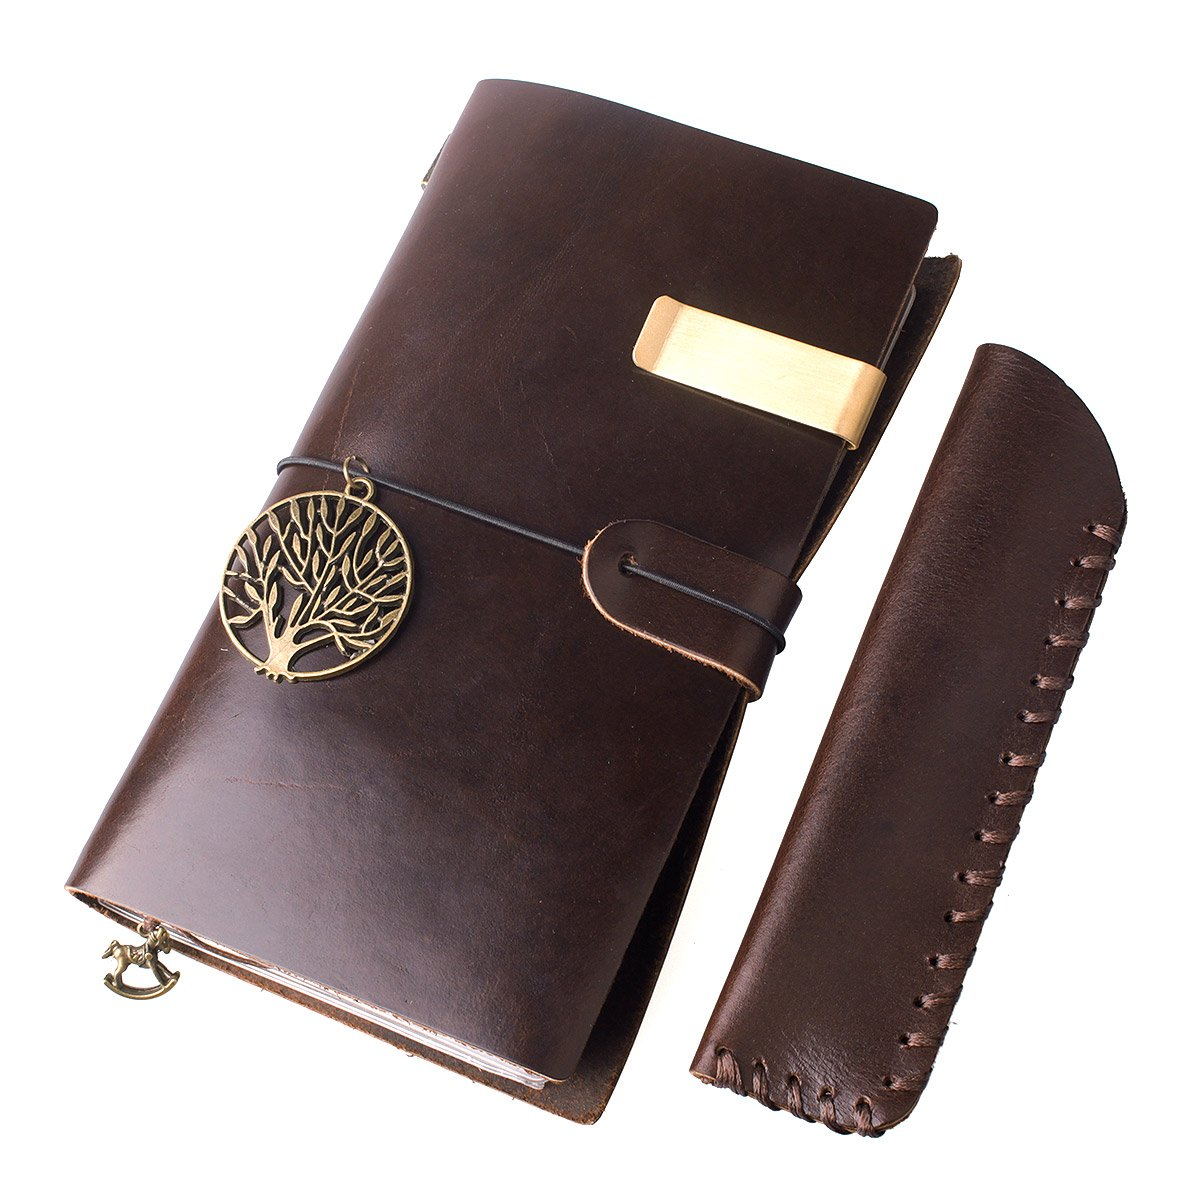 AYOUYA Leather Journal Writing Notebook Made of Classic Genuine Leather, Writing Journal Diary, Leather Bound Journal 7 x 4 x 0.7 Inches with Mini Pencil Case 6 x 1.5 Inches, Brown